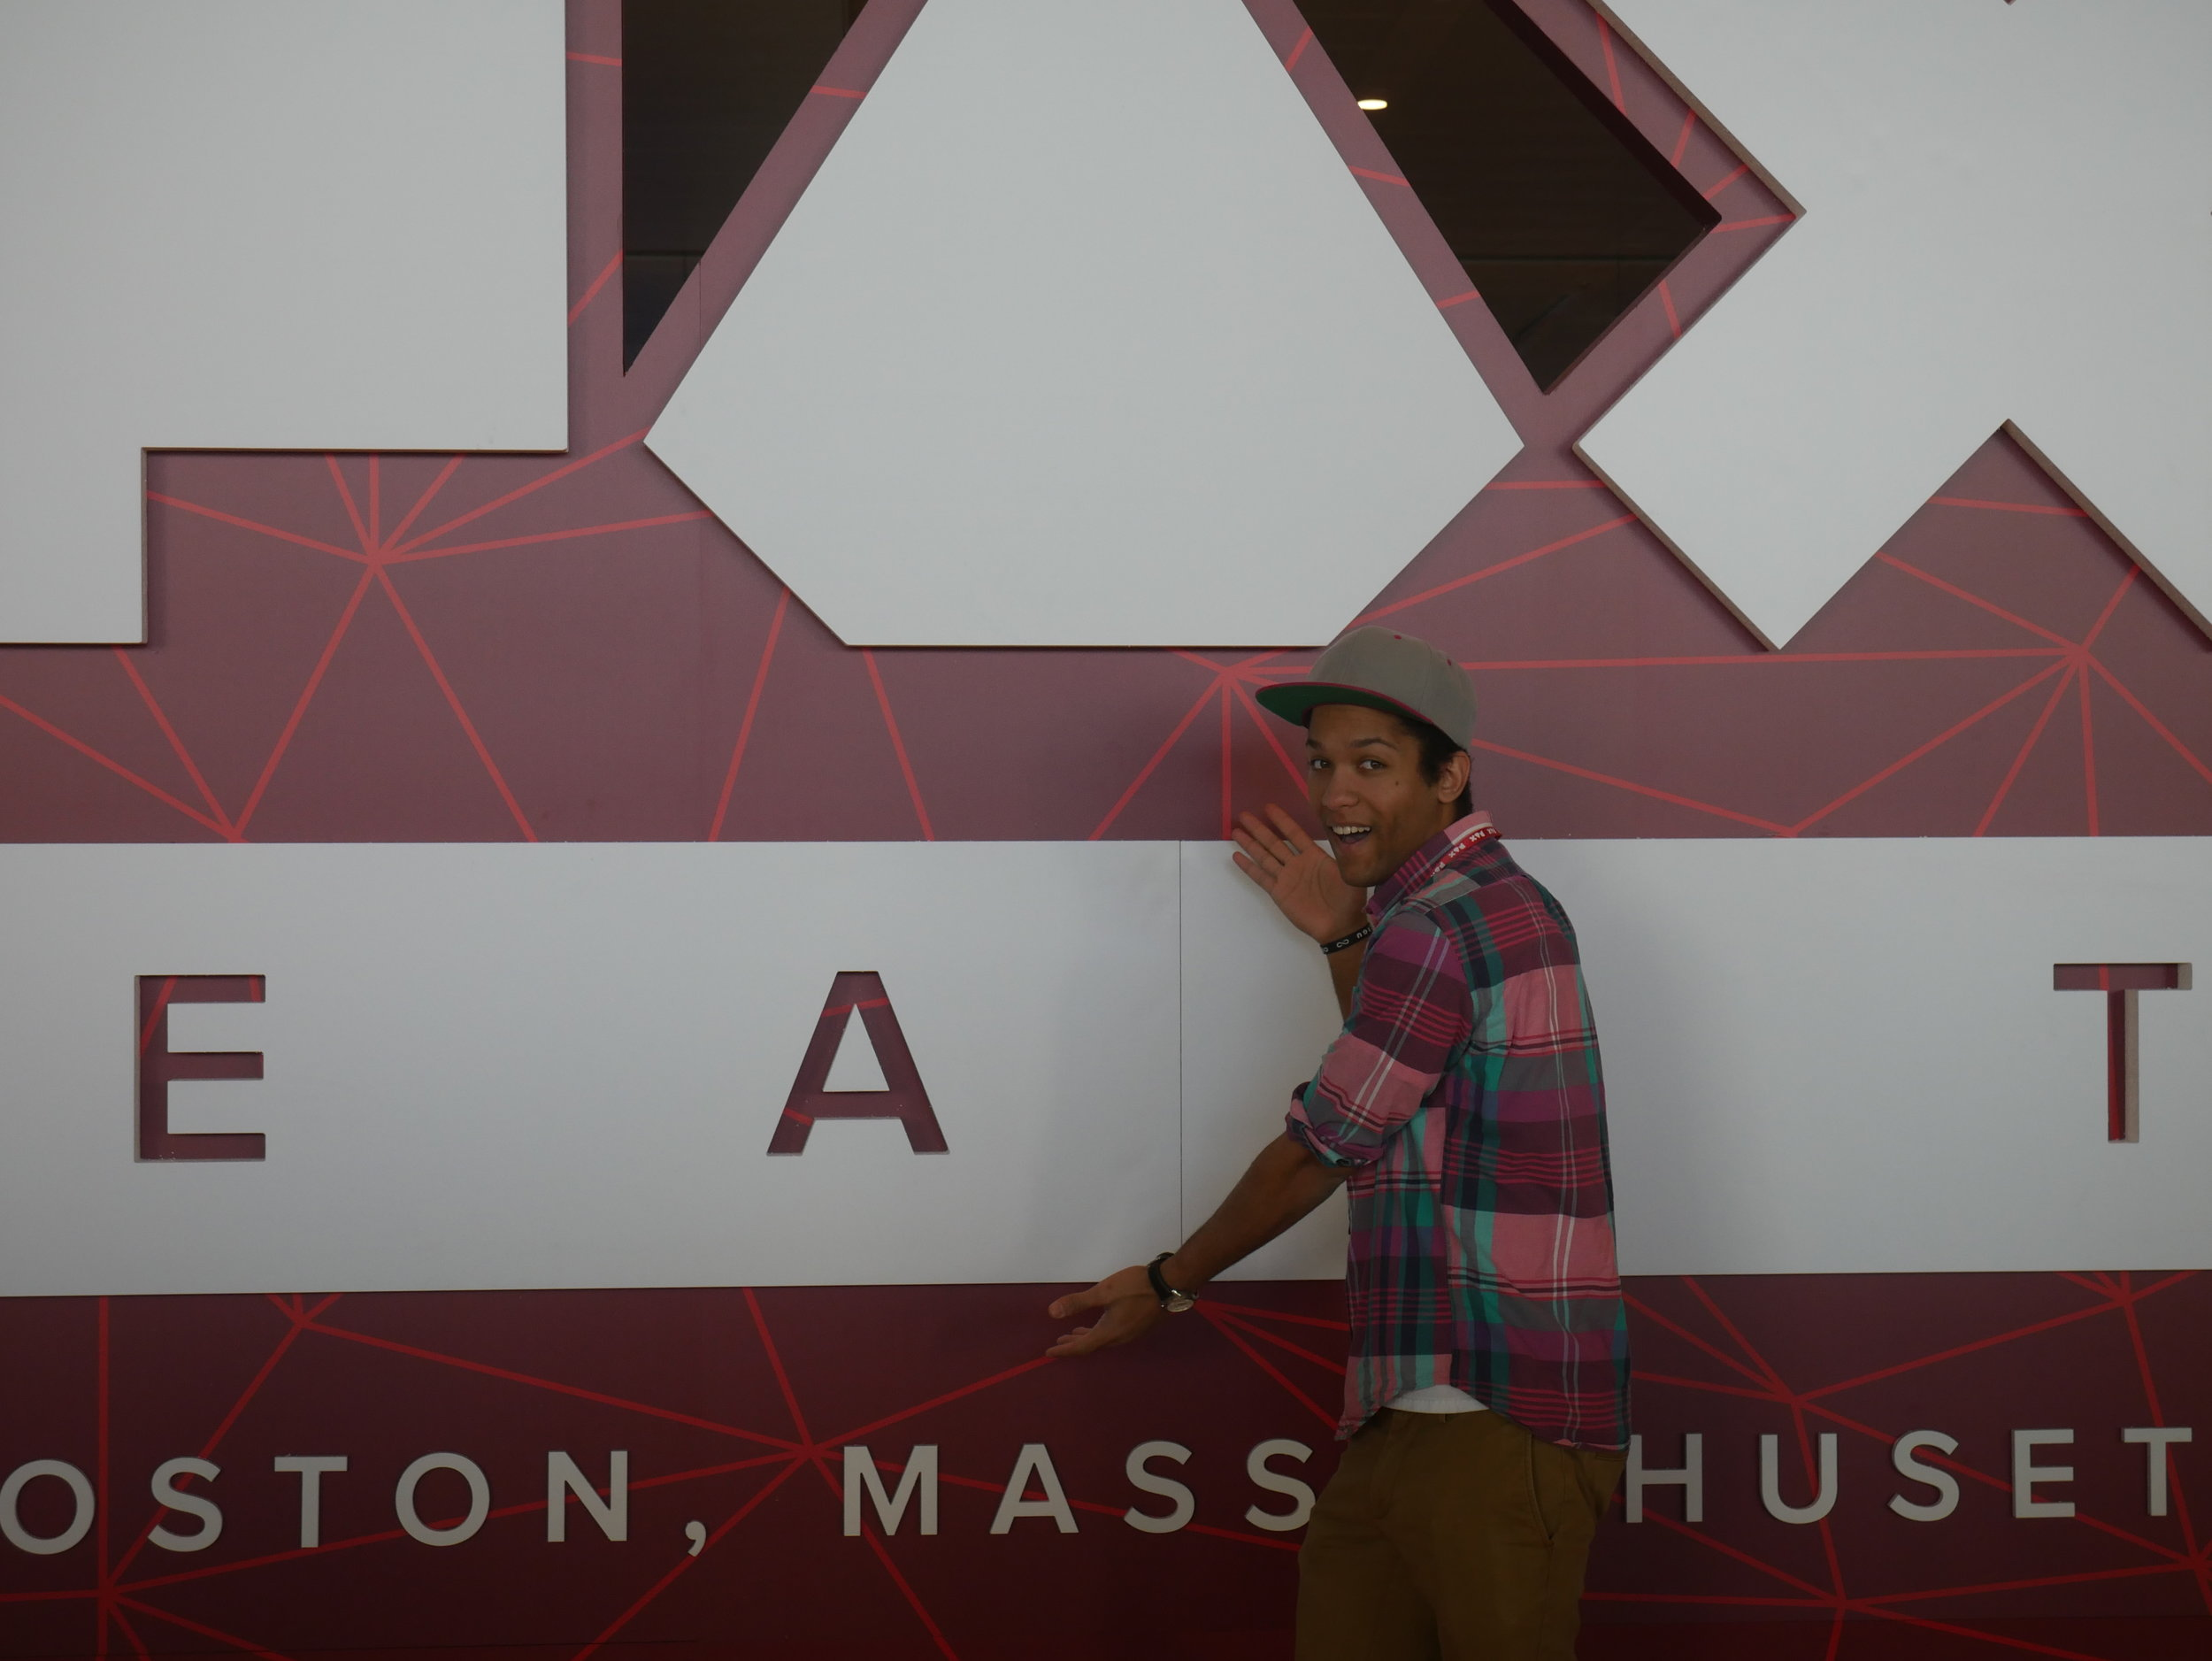 I strike a pose in front of the main PAX East sign.